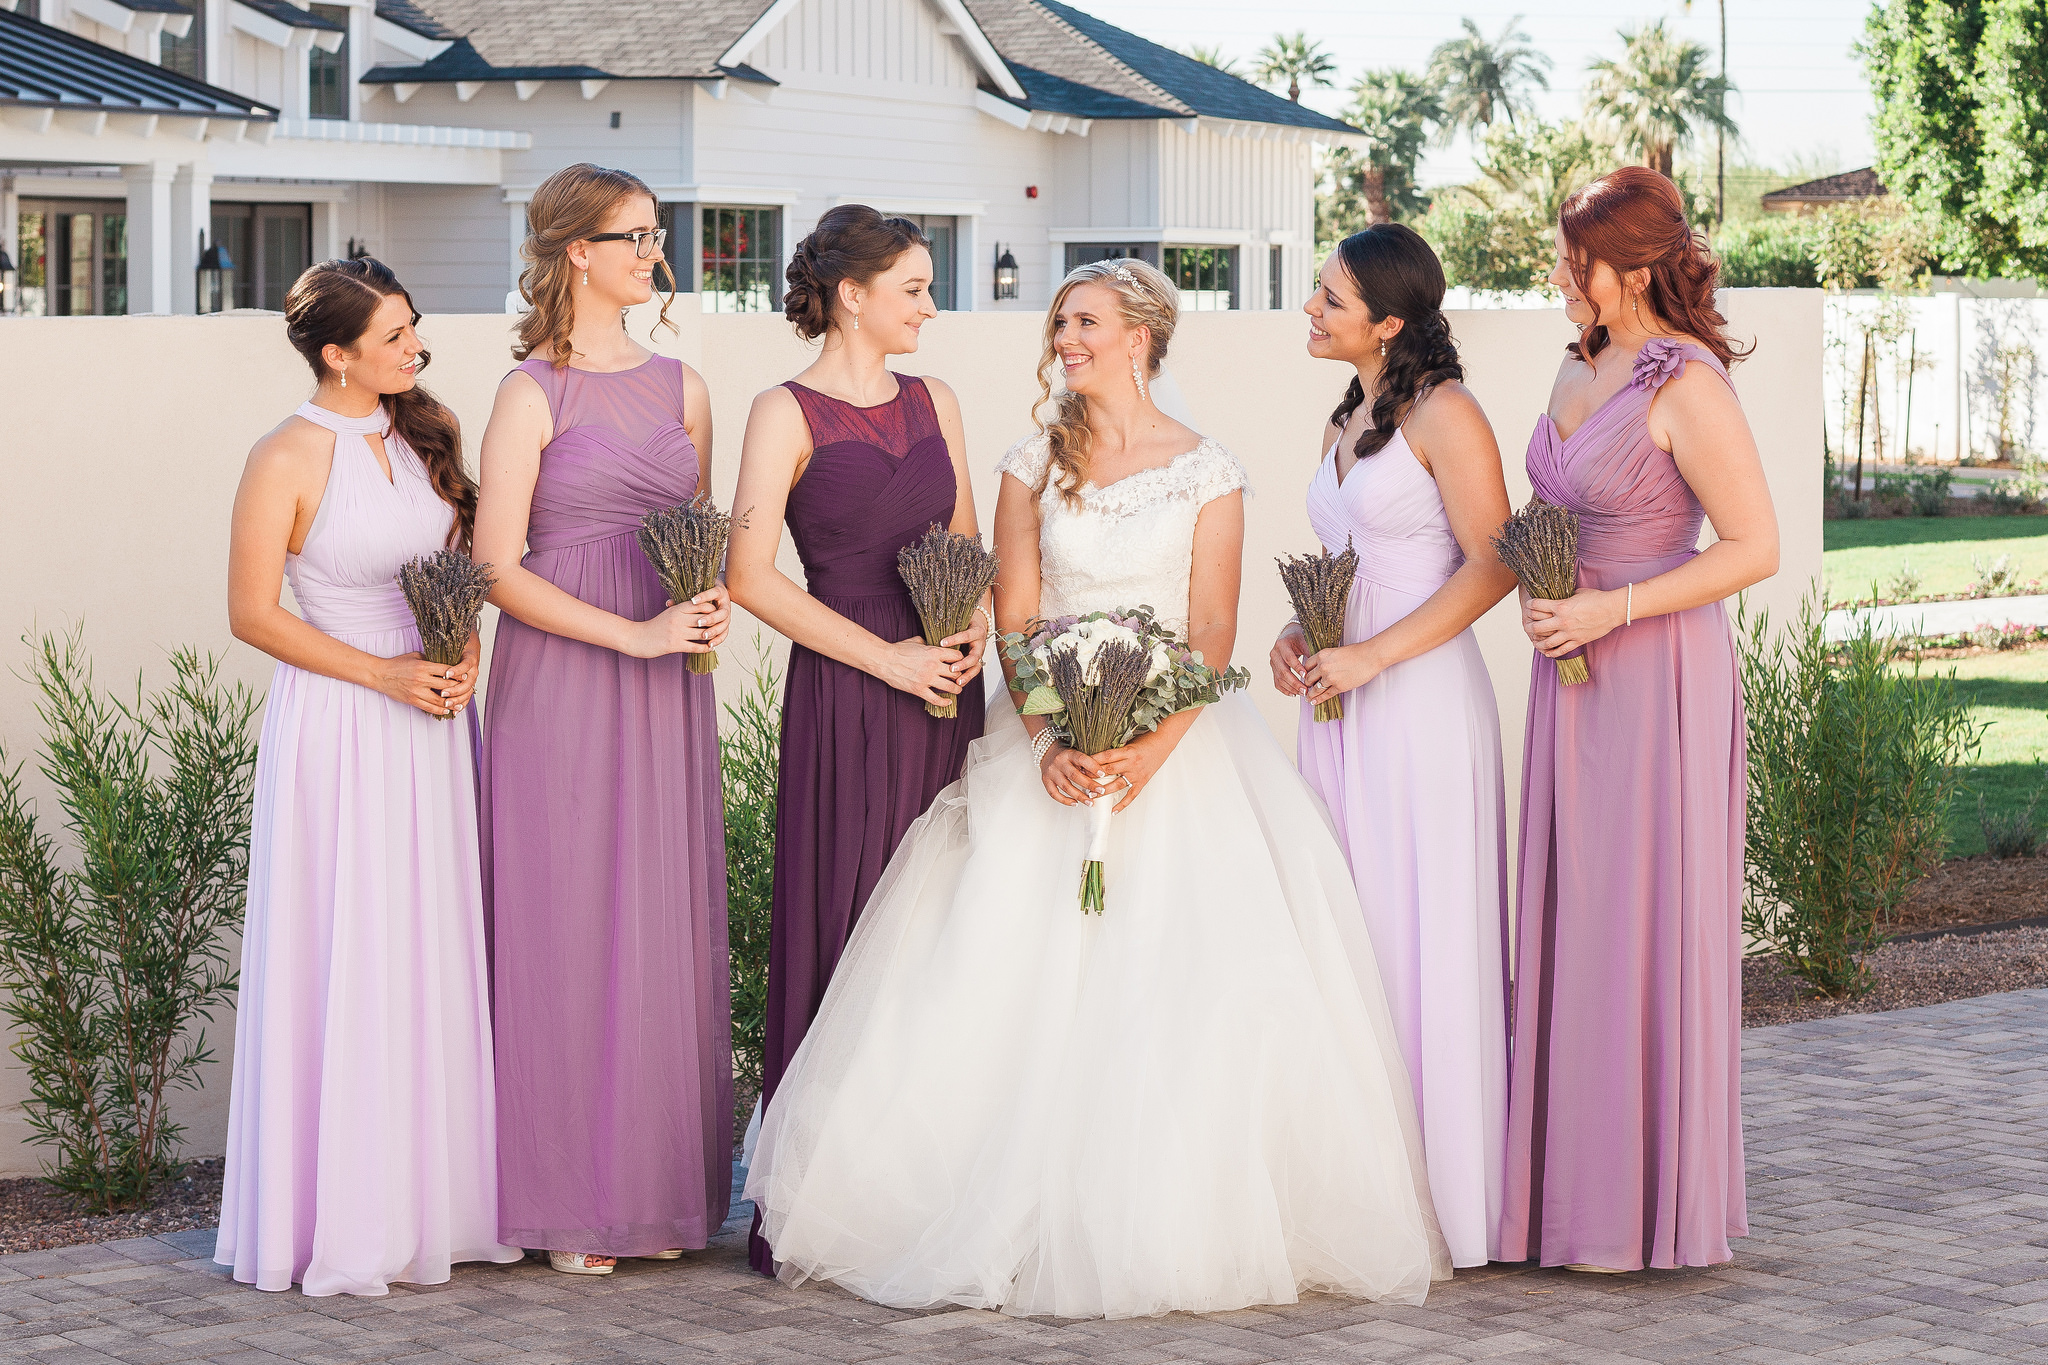 Wedding Bridesmaids Purple Maid Of Honor Moh Mix And Match